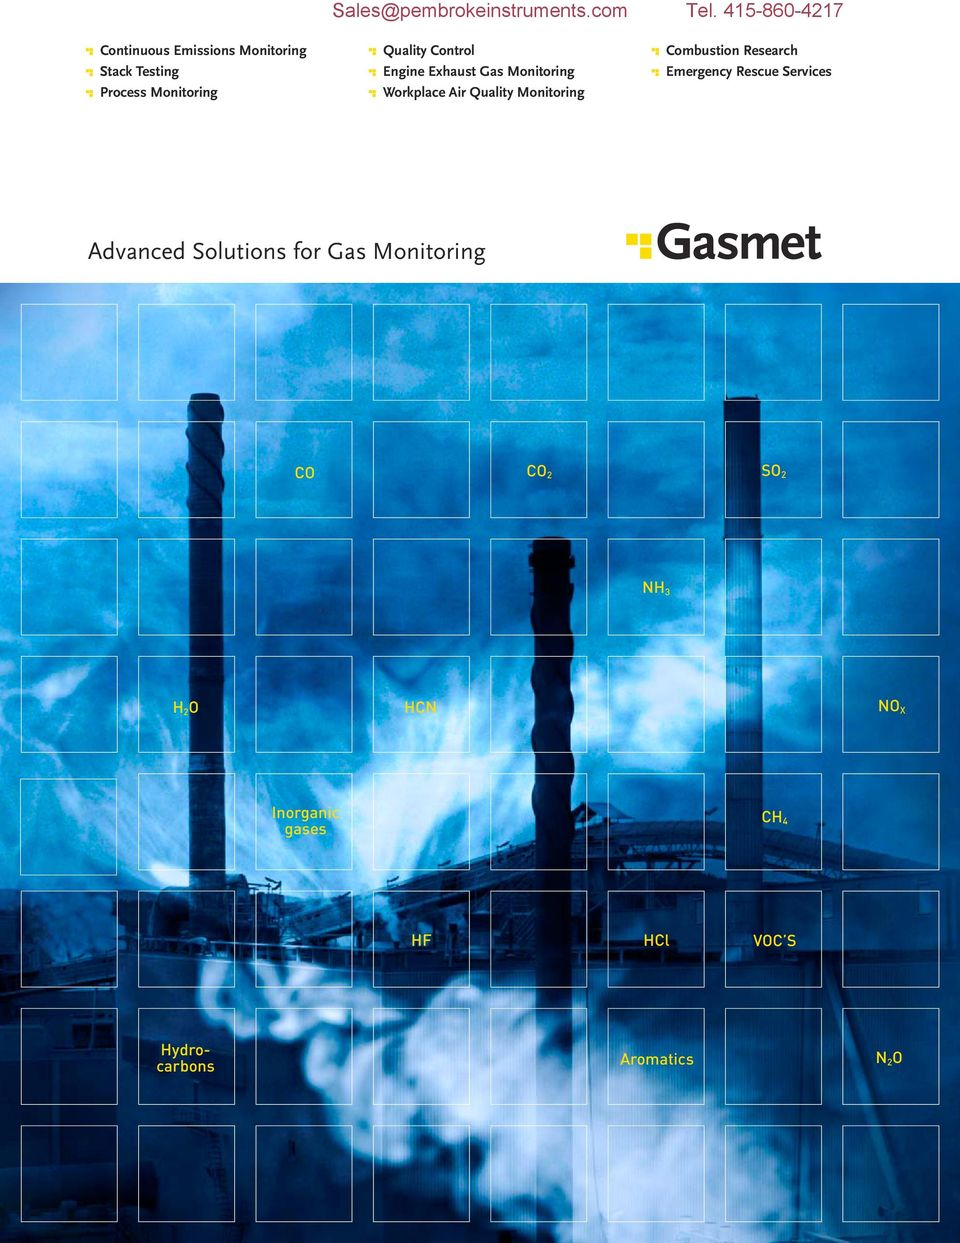 Research Emergency Rescue Services Advanced Solutions for Gas Monitoring CO CO 2